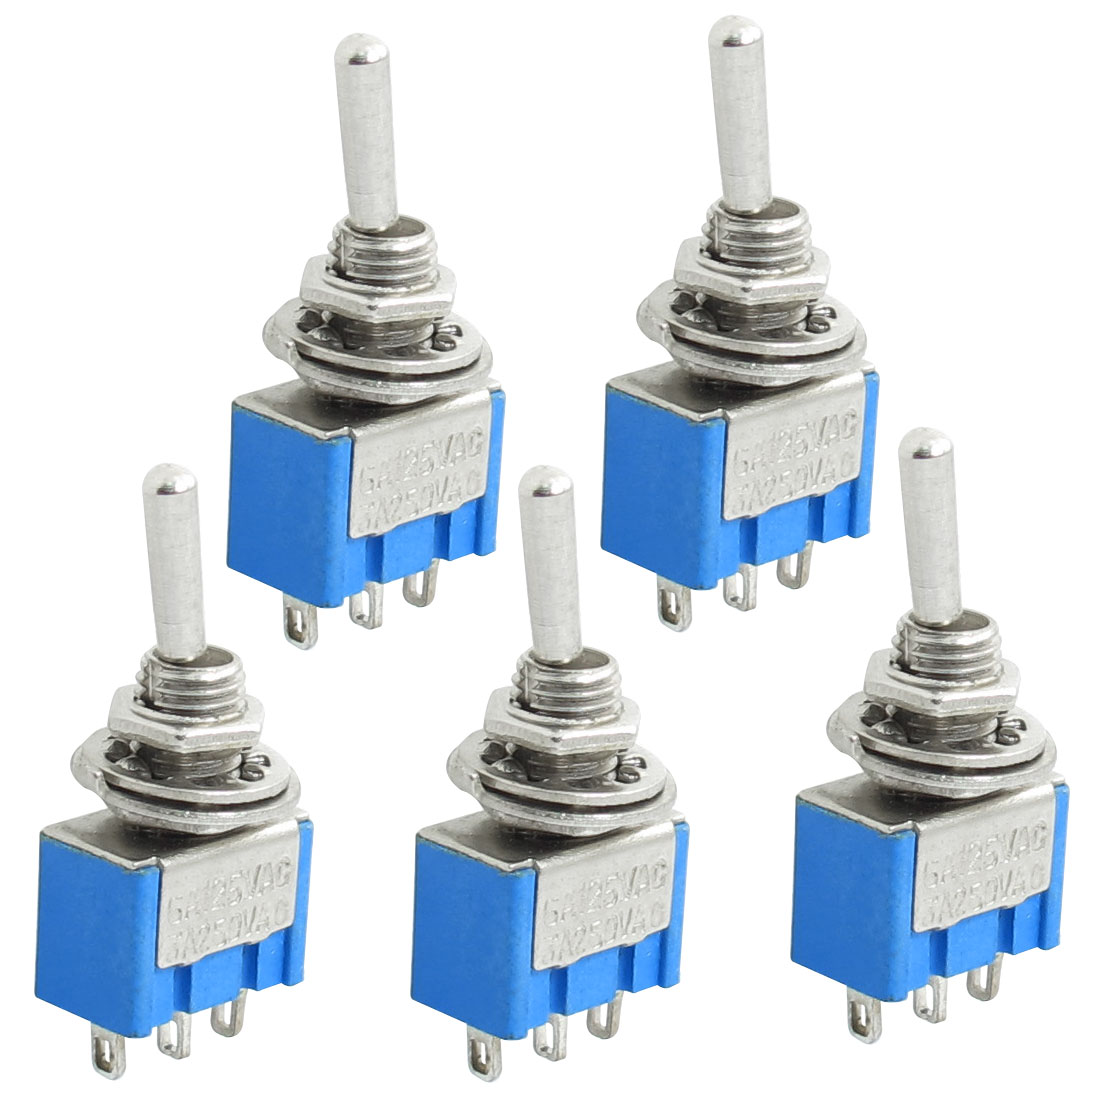 5x 3 Terminals SPDT On Off On Toggle Switches AC 125V 6A